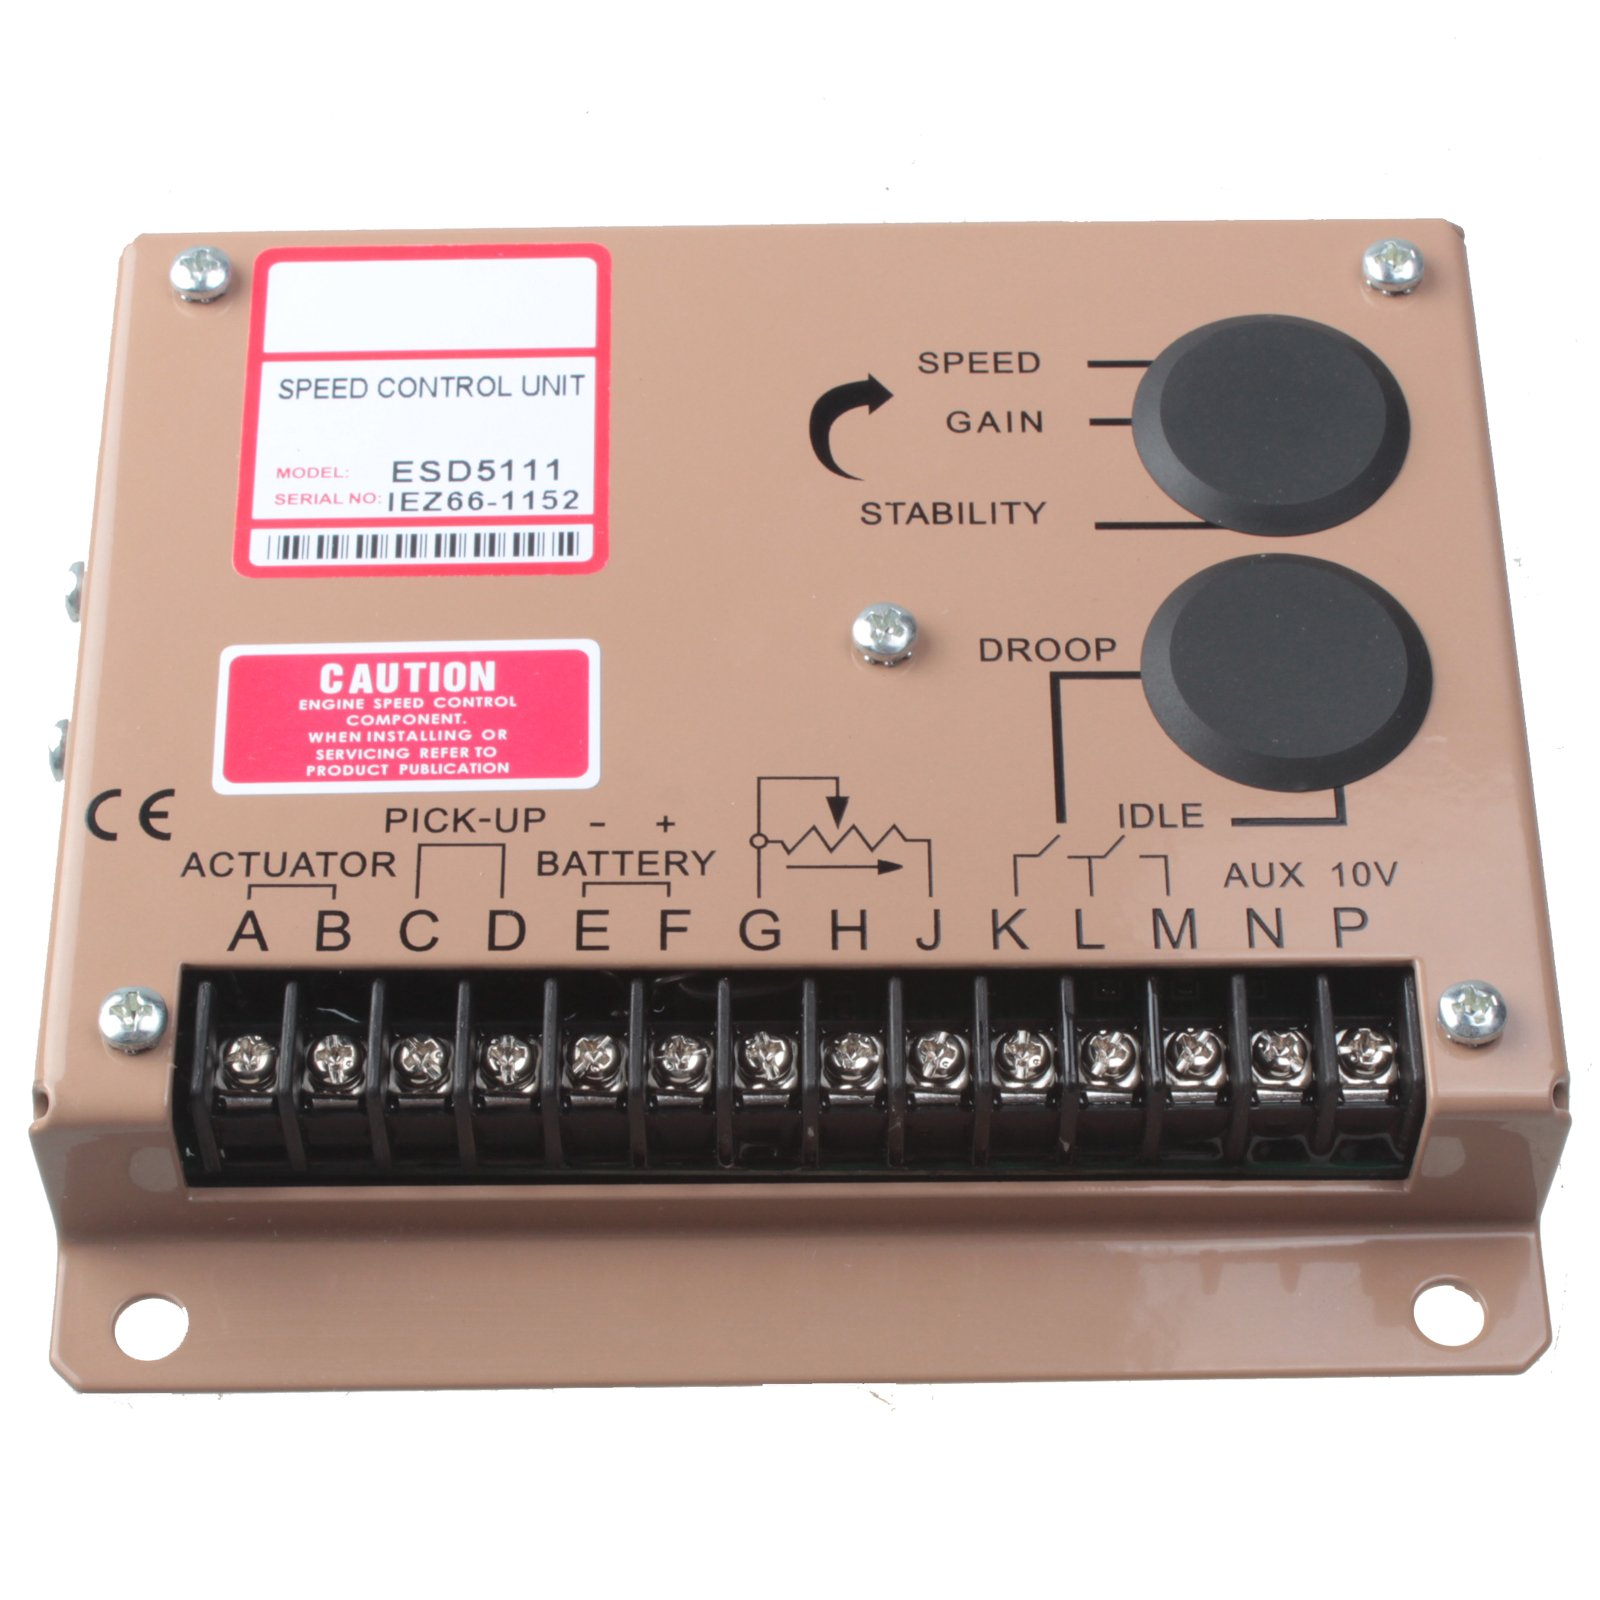 Friday Part Electronic Engine Speed Controller